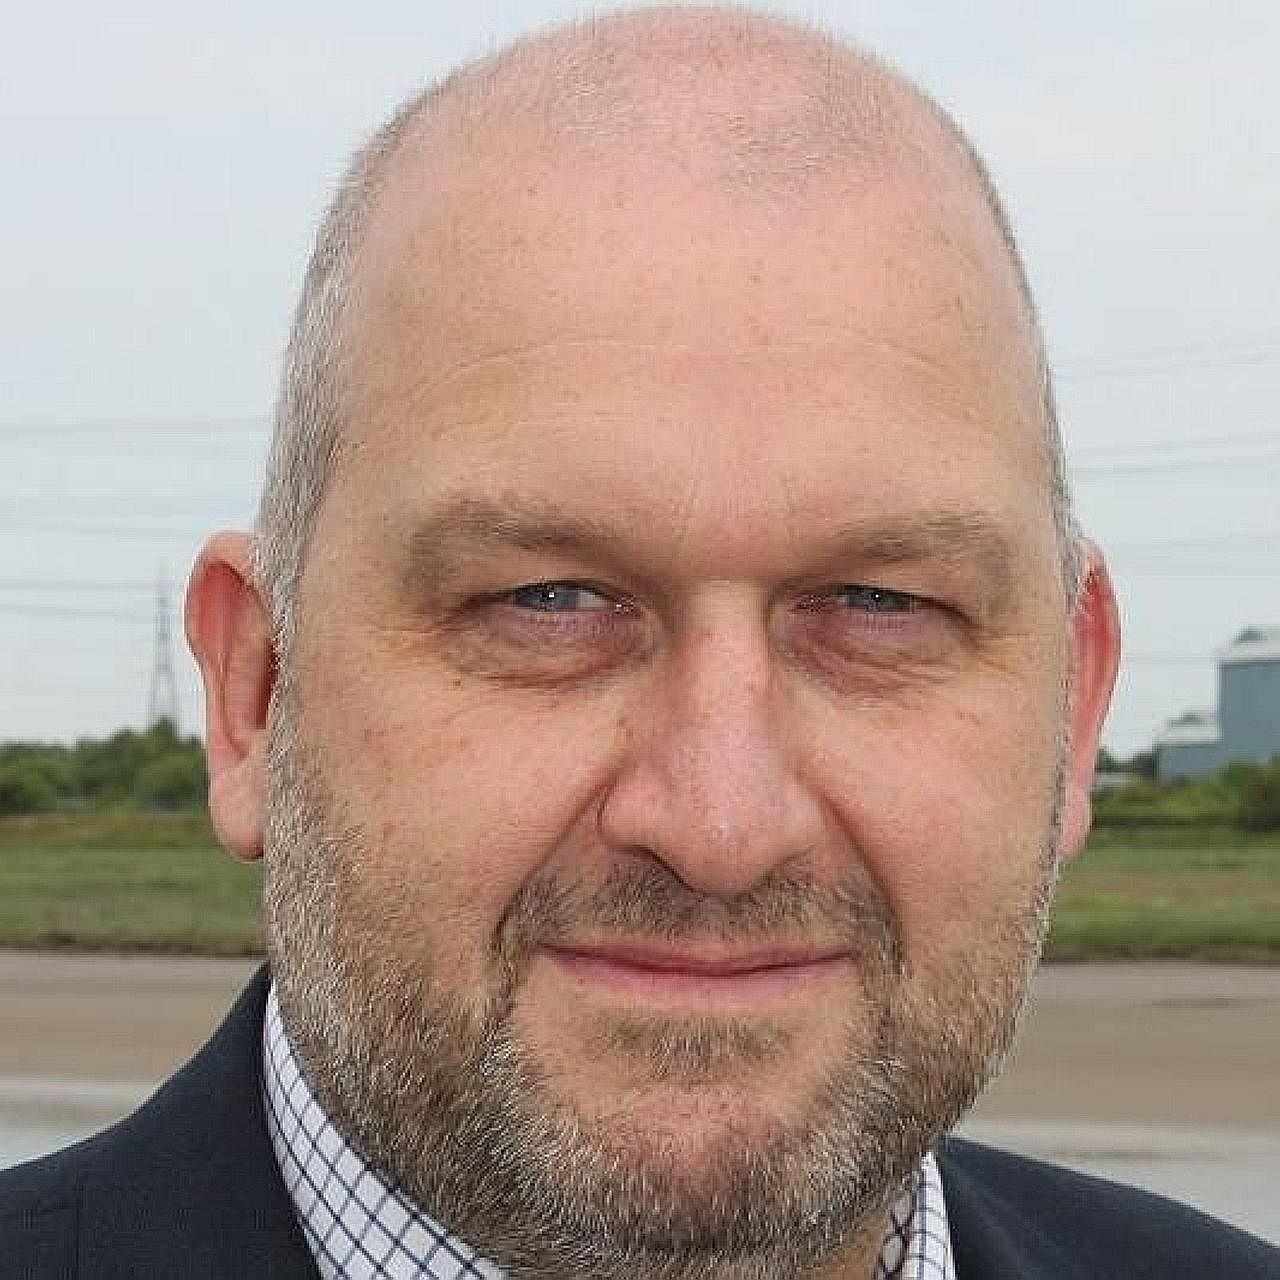 Details of Mr Carl Sargeant's alleged misconduct have not been made public.